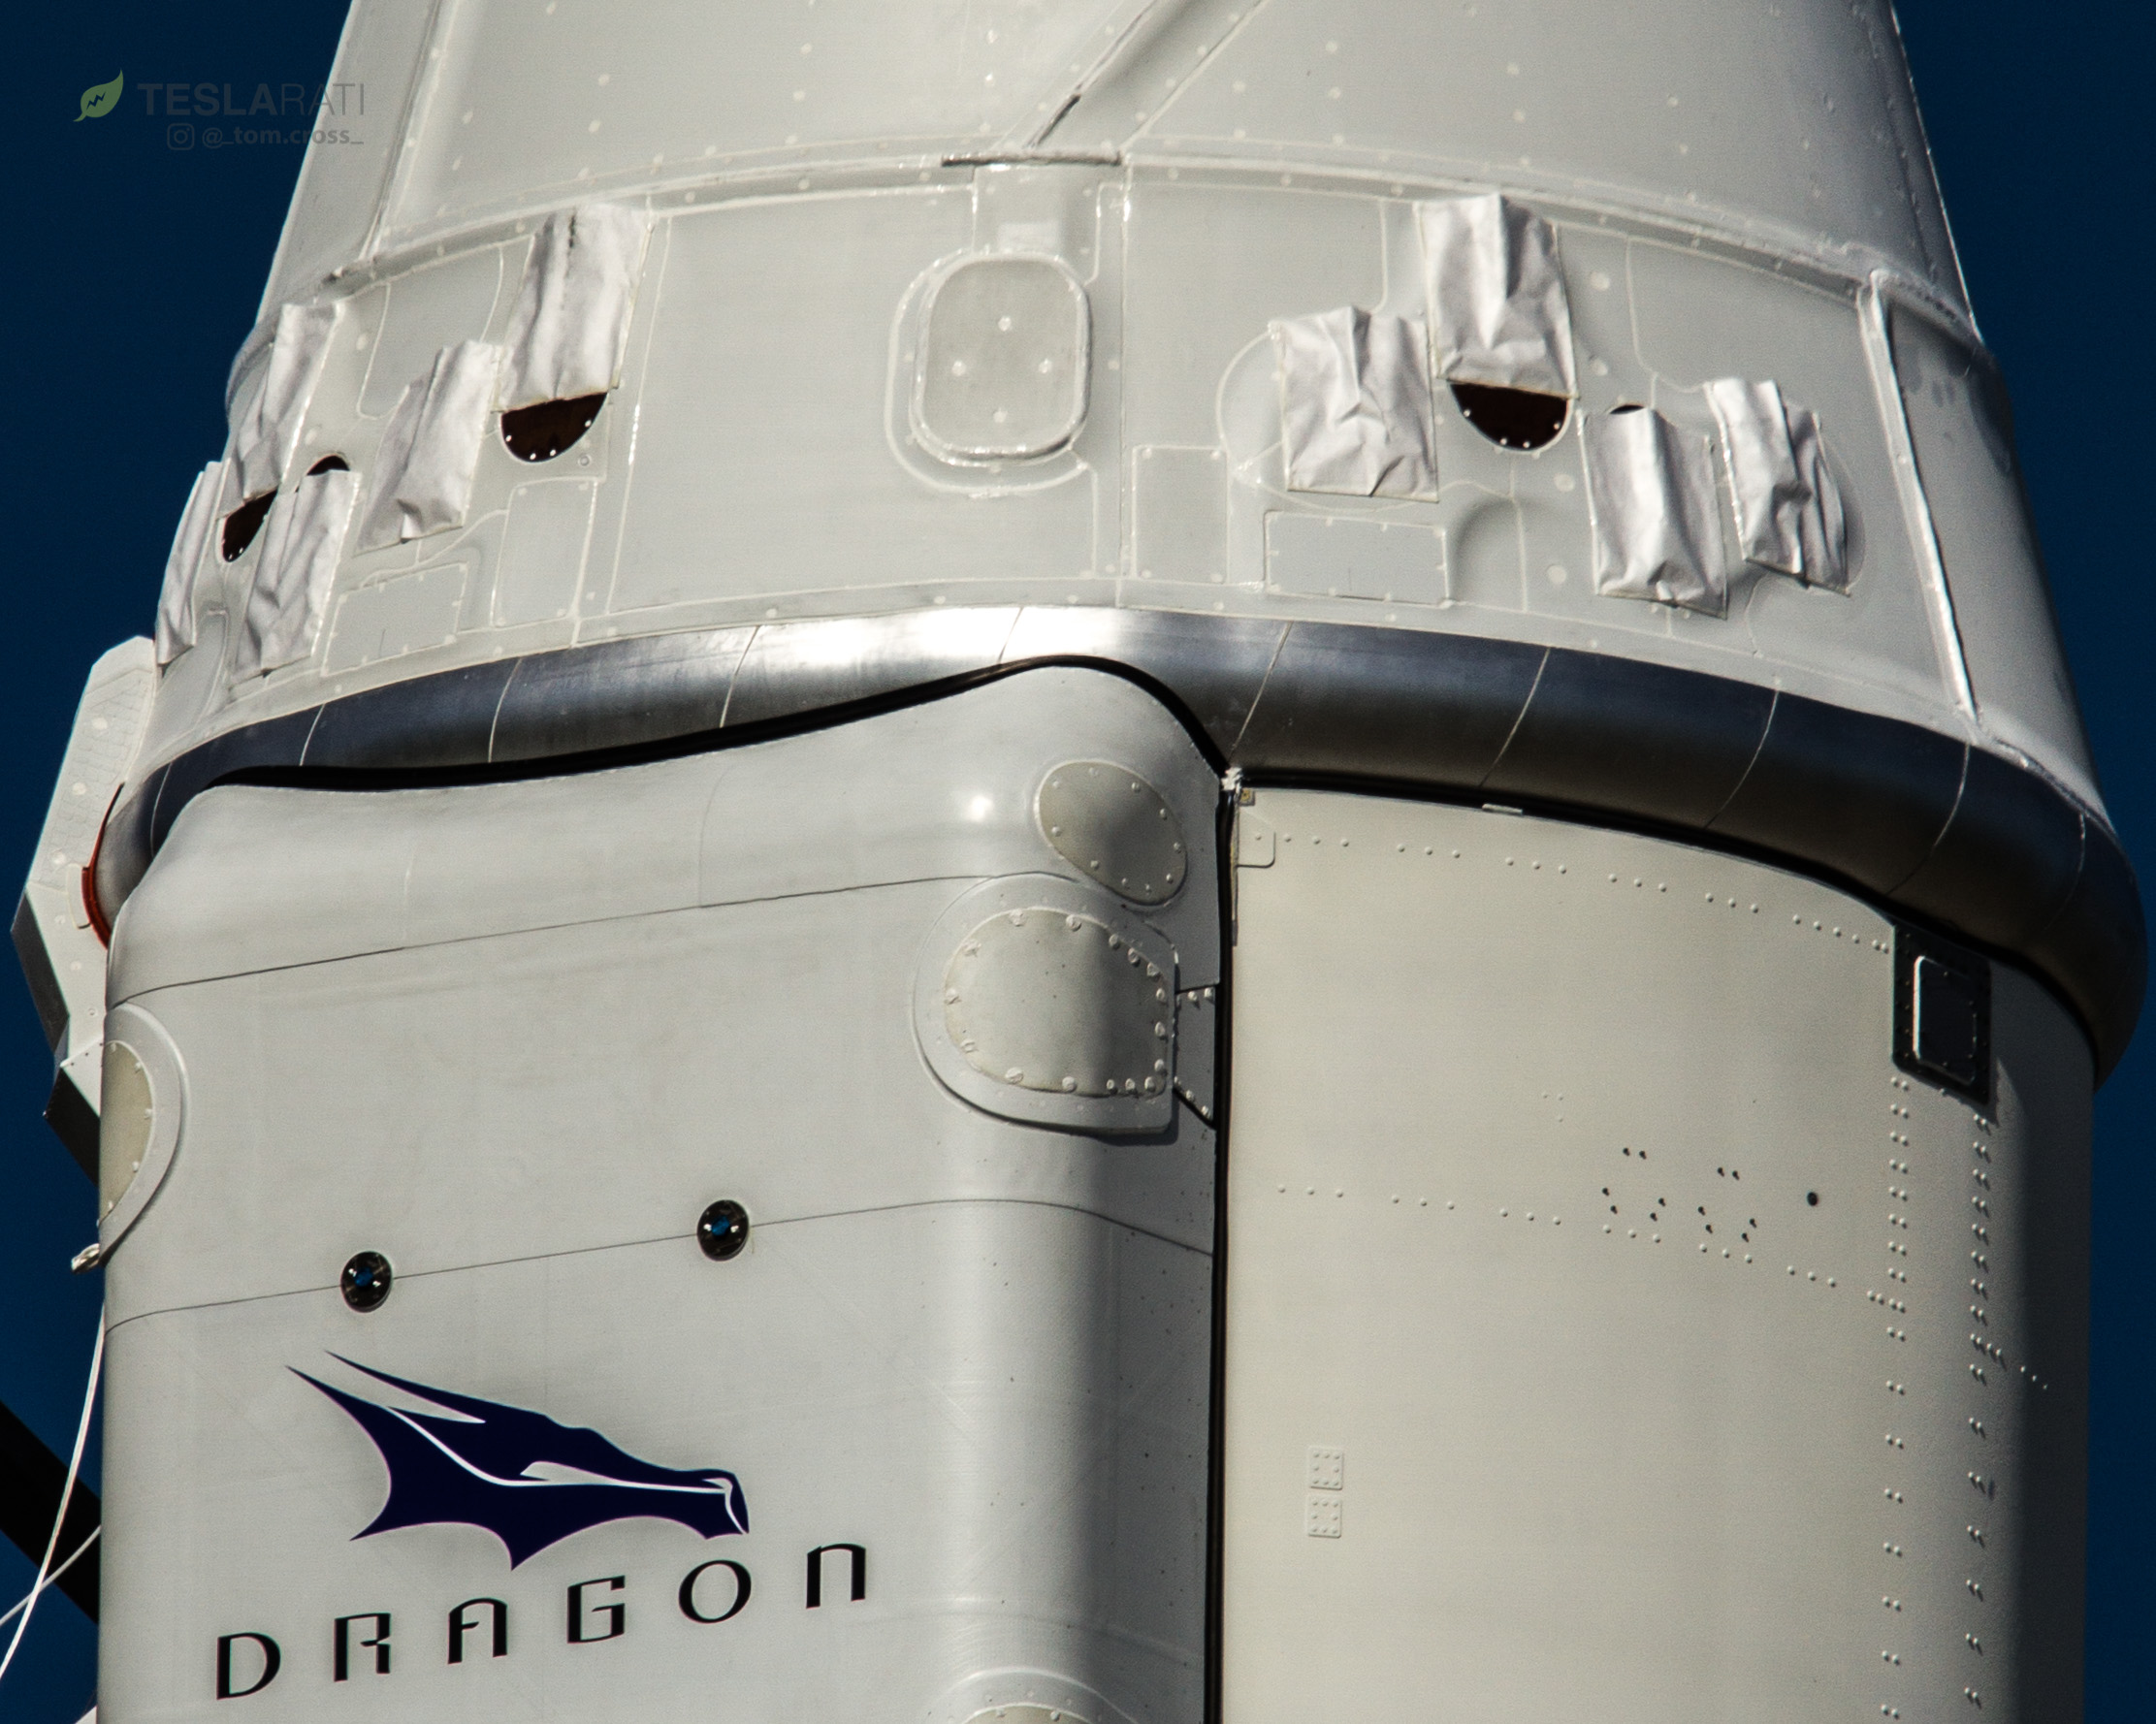 CRS-14 Dragon details 1 (Tom Cross)